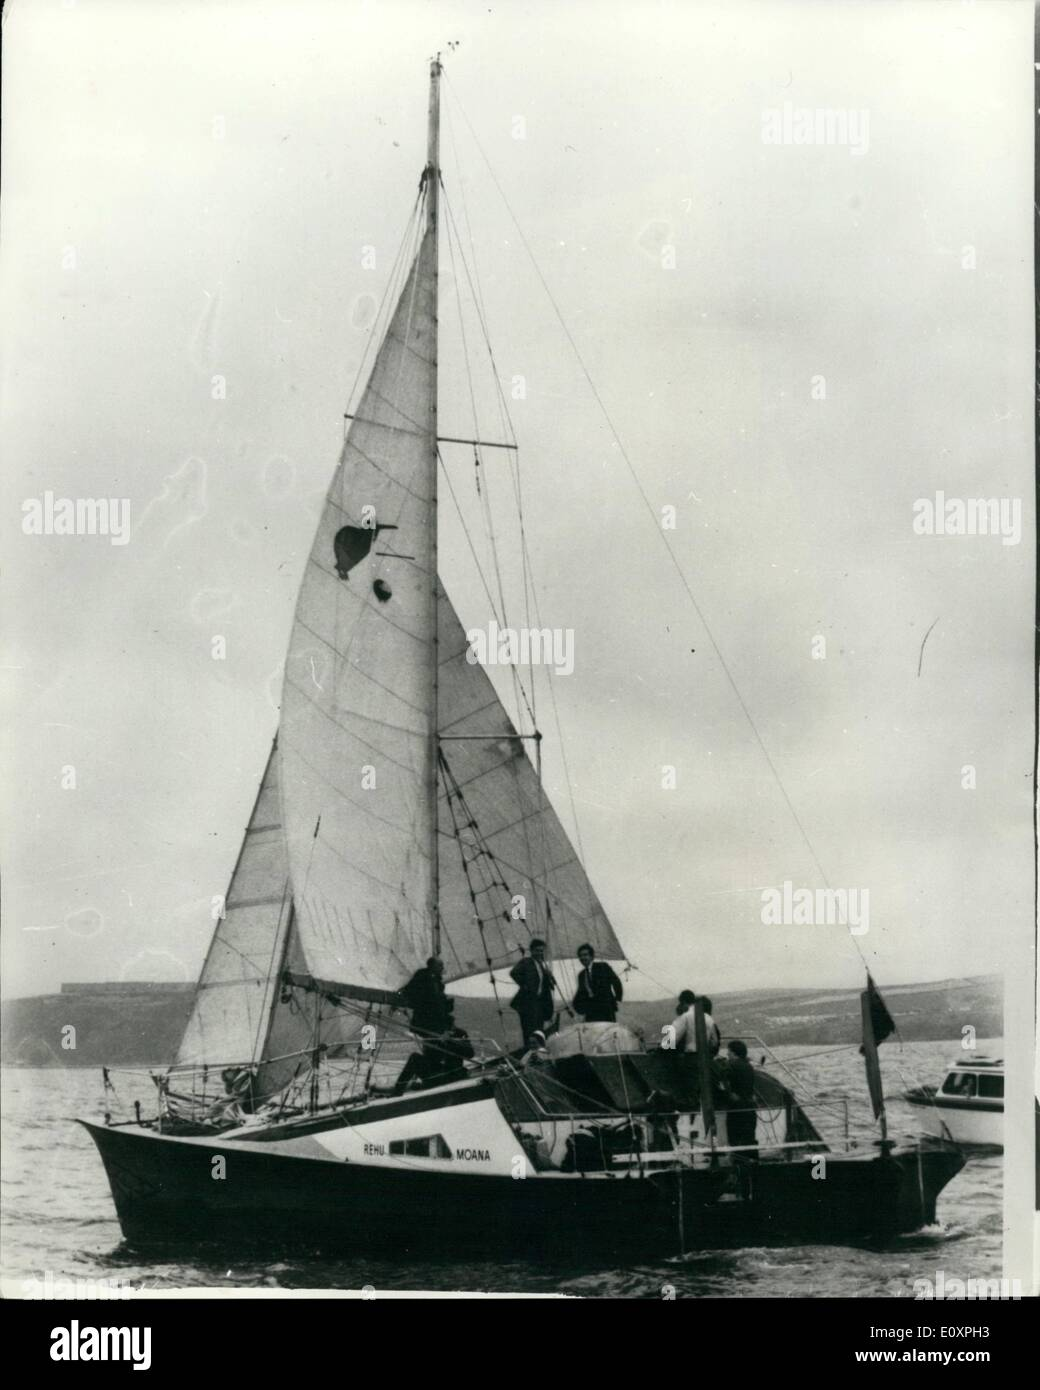 Jul. 28, 1967 - 28-7-67 Round the world Catamaran arrives home. Dr. David Lewis, 48, and his wife, Fiona, arrived at Plymouth yesterday at the end of his three-year old round the world voyage of 38,000 miles, in the 42 ft. catamaran, Rehu Moana. On board with them were their children, Susie, 5 and Vicky, 4, and Miss Priscilla Cairns, 34, who acted as navigator from Tahiti. Mrs. Lewis and the children joined the boat in New York on her outward journey. Photo Shows: The catamaran Rehu Moana enters Plymouth Sound at the end of the voyage yesterday. - Stock Image